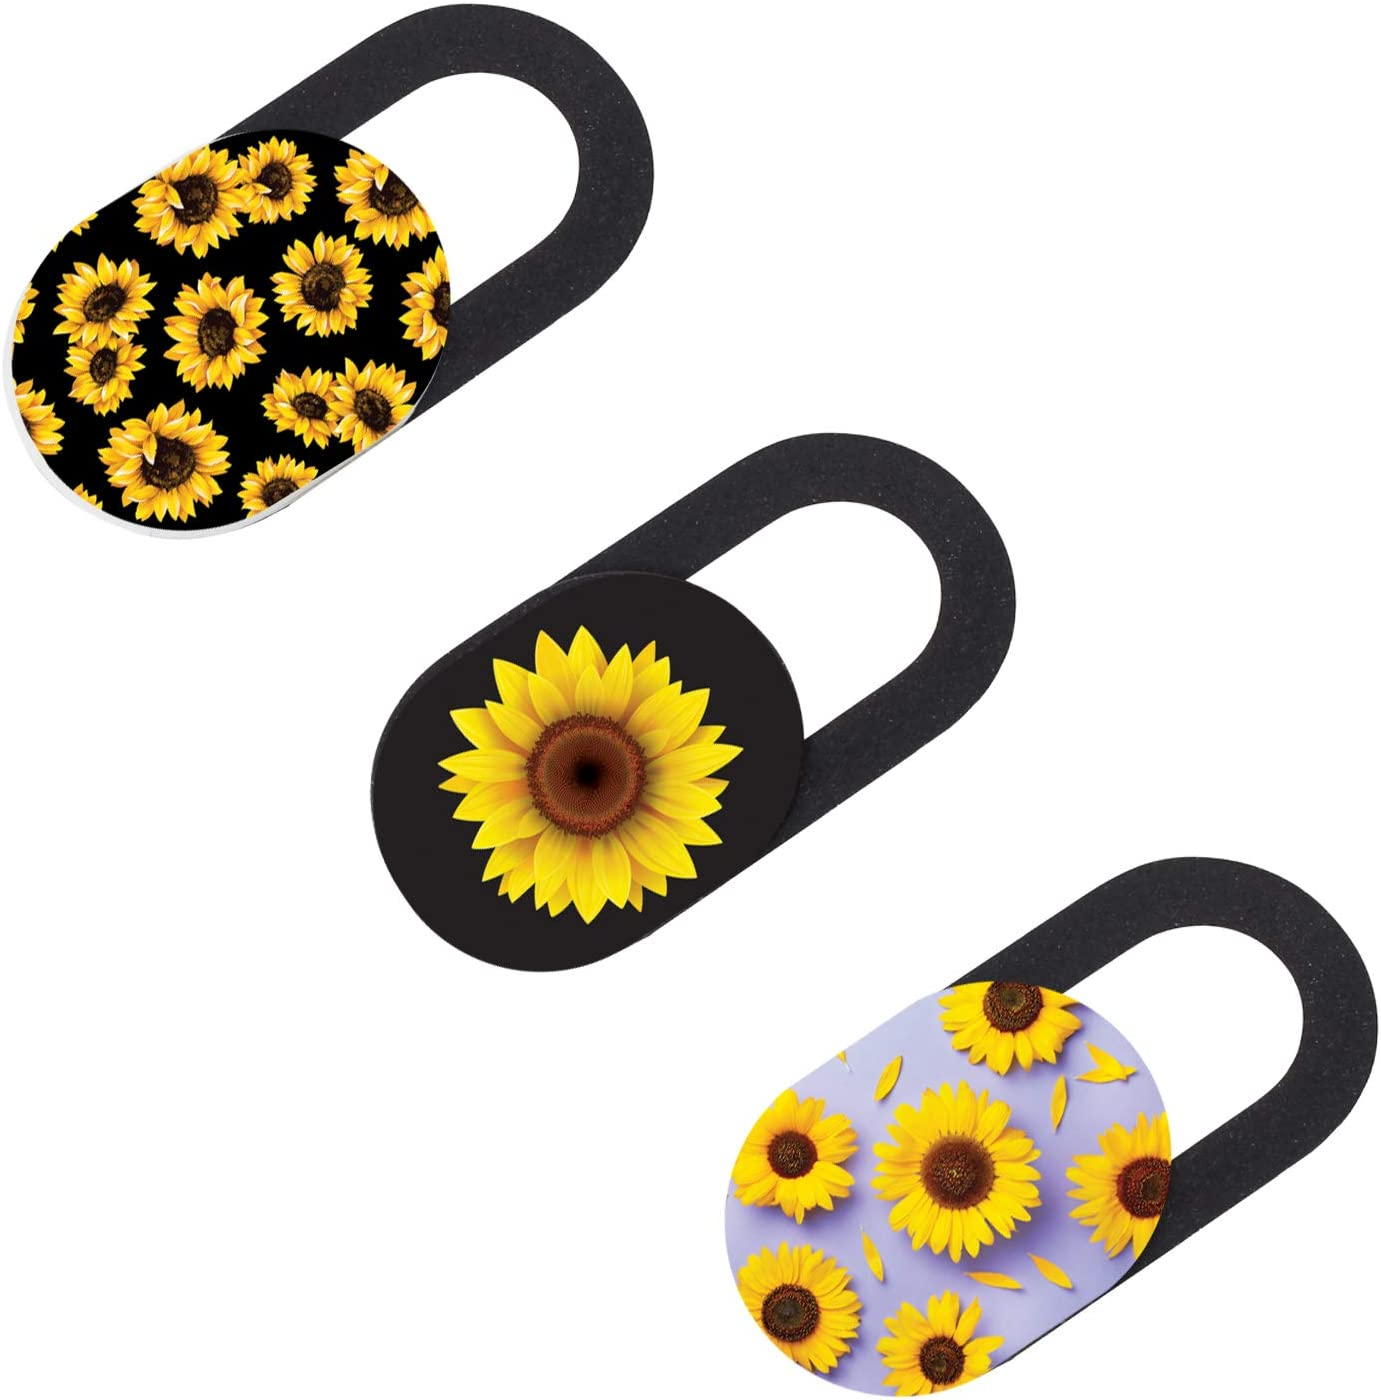 SLiDEE Laptop Camera Privacy Cover 3-Pack   0.7mm Ultra-Thin Camera Cover Slide   Strong Adhesive Sunflower Mix Design Webcam Cover Compatible for MacBook Pro/Air, iPhone, Computer, iPad, Cell Phones